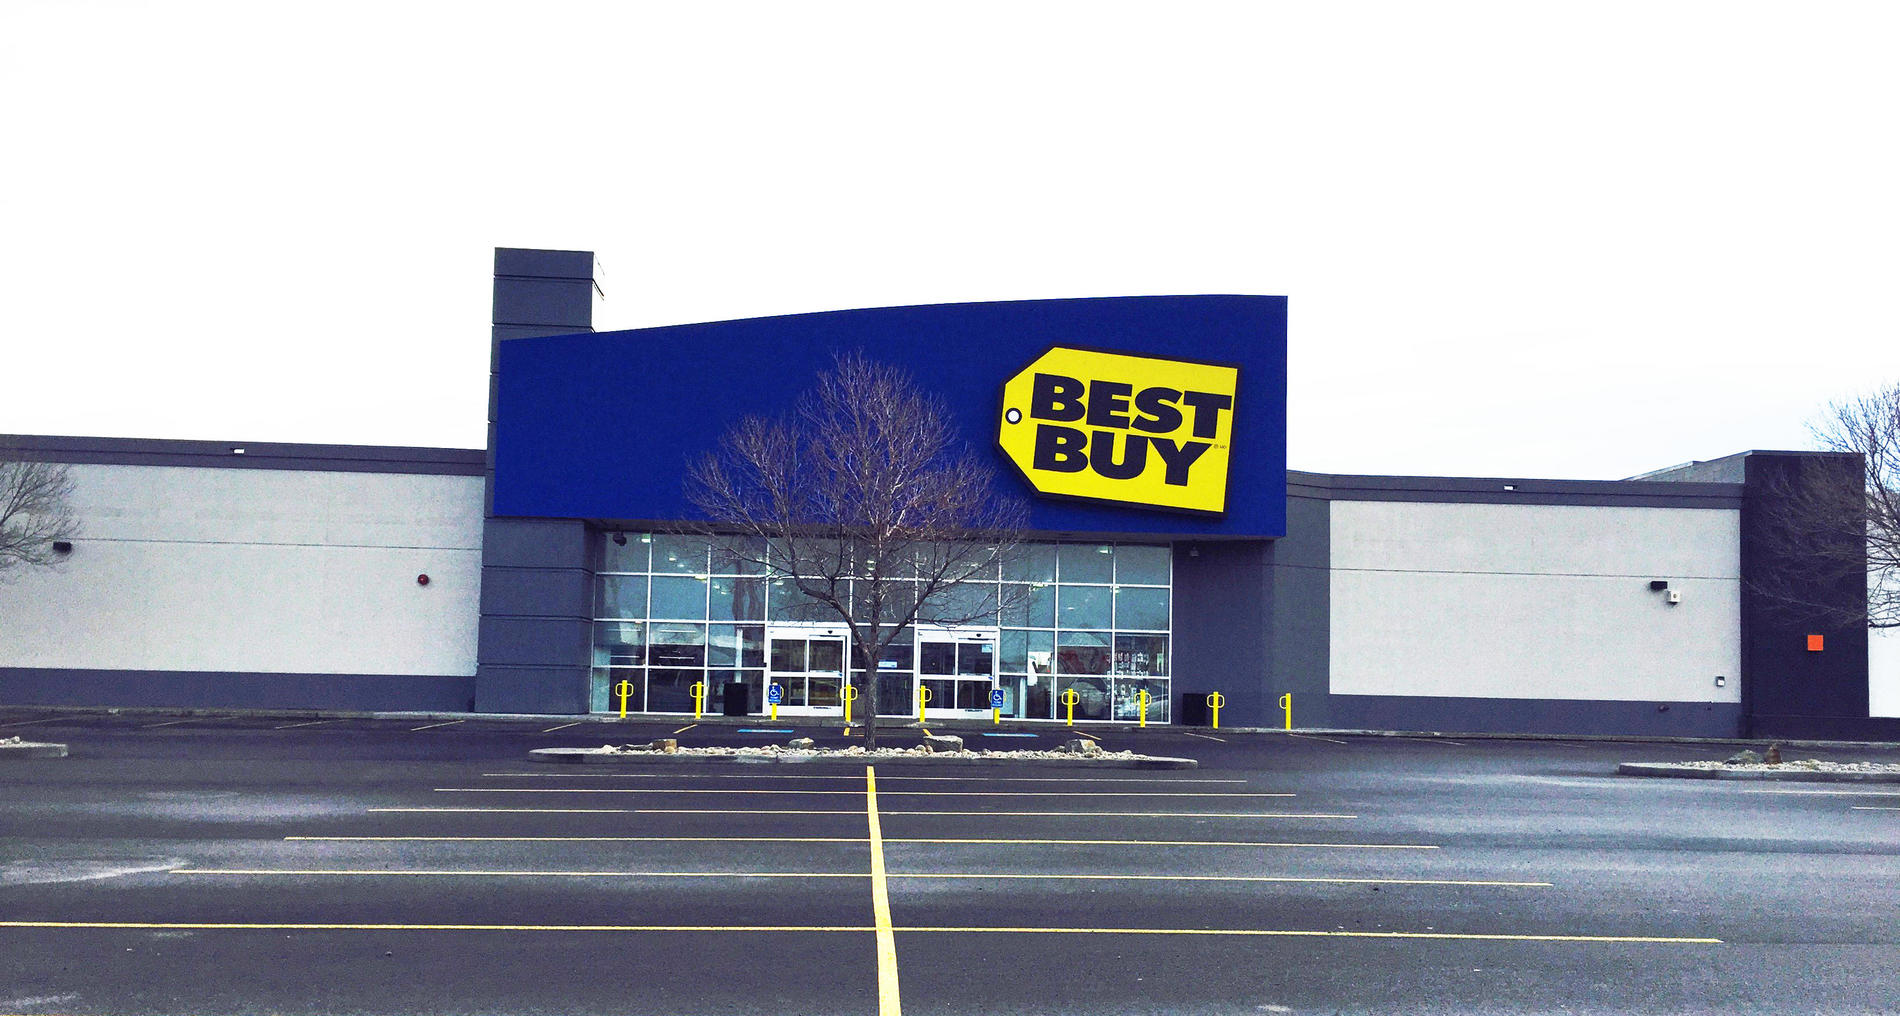 Best Buy Fairview Pointe-Claire